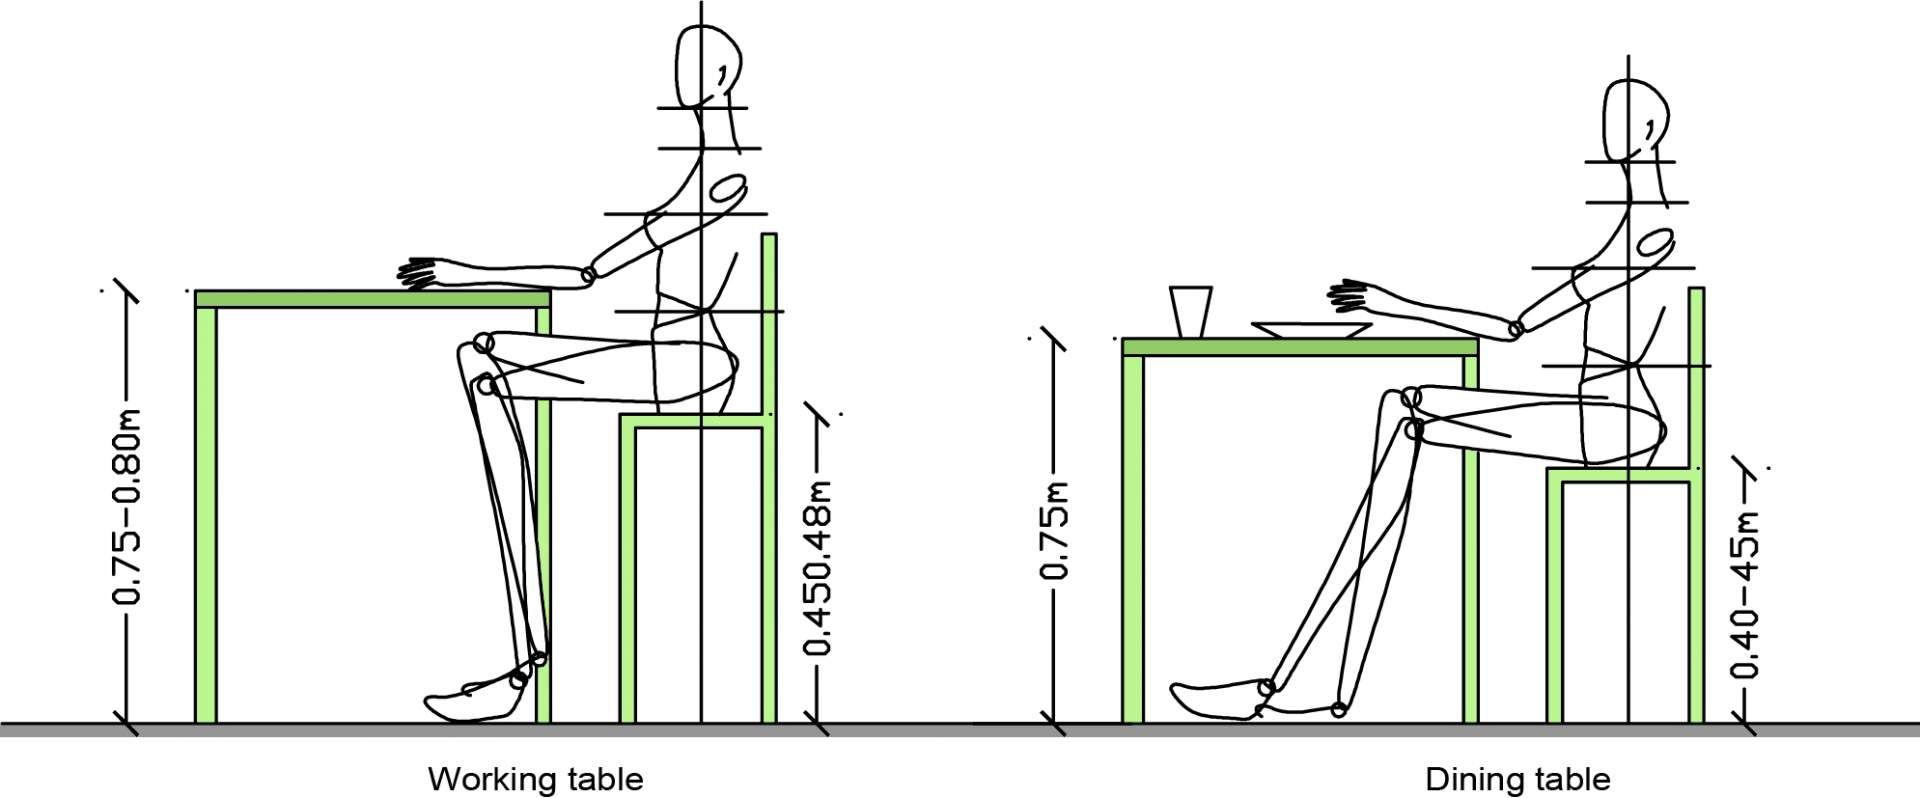 Standard Dining Table Size Google Search Office Ergonomics In Layjao